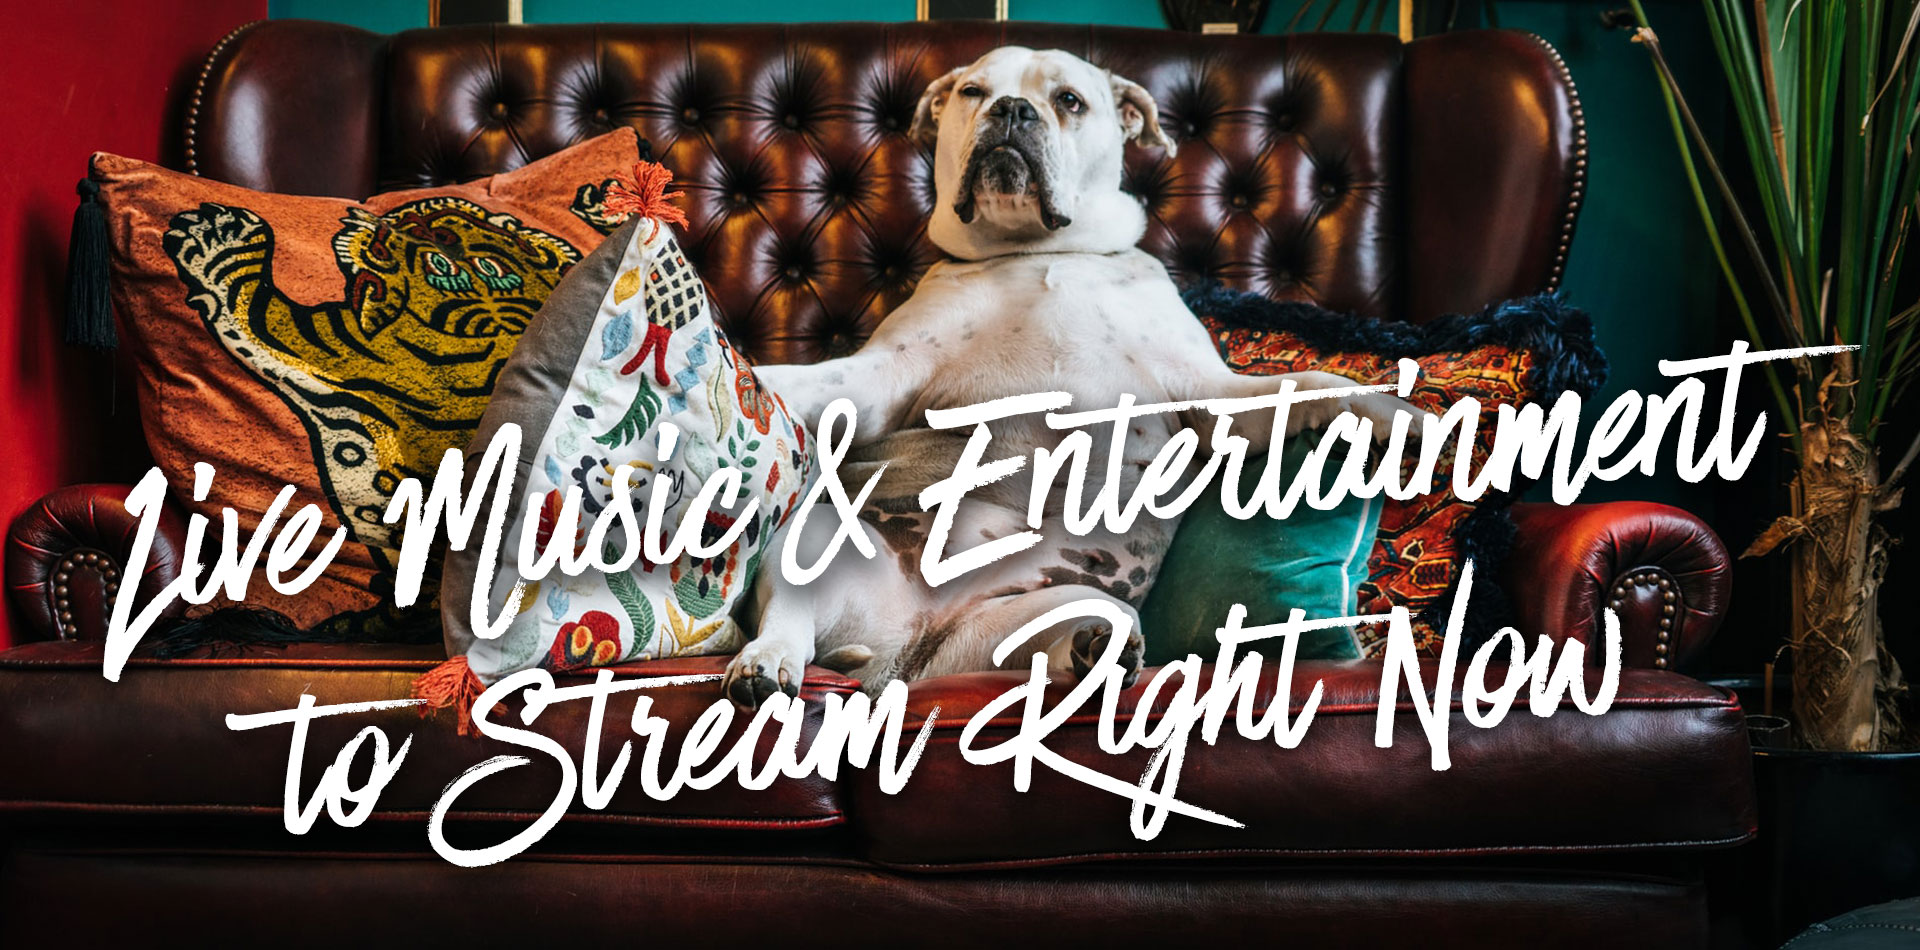 Live Music & Entertainment to Stream Right Now